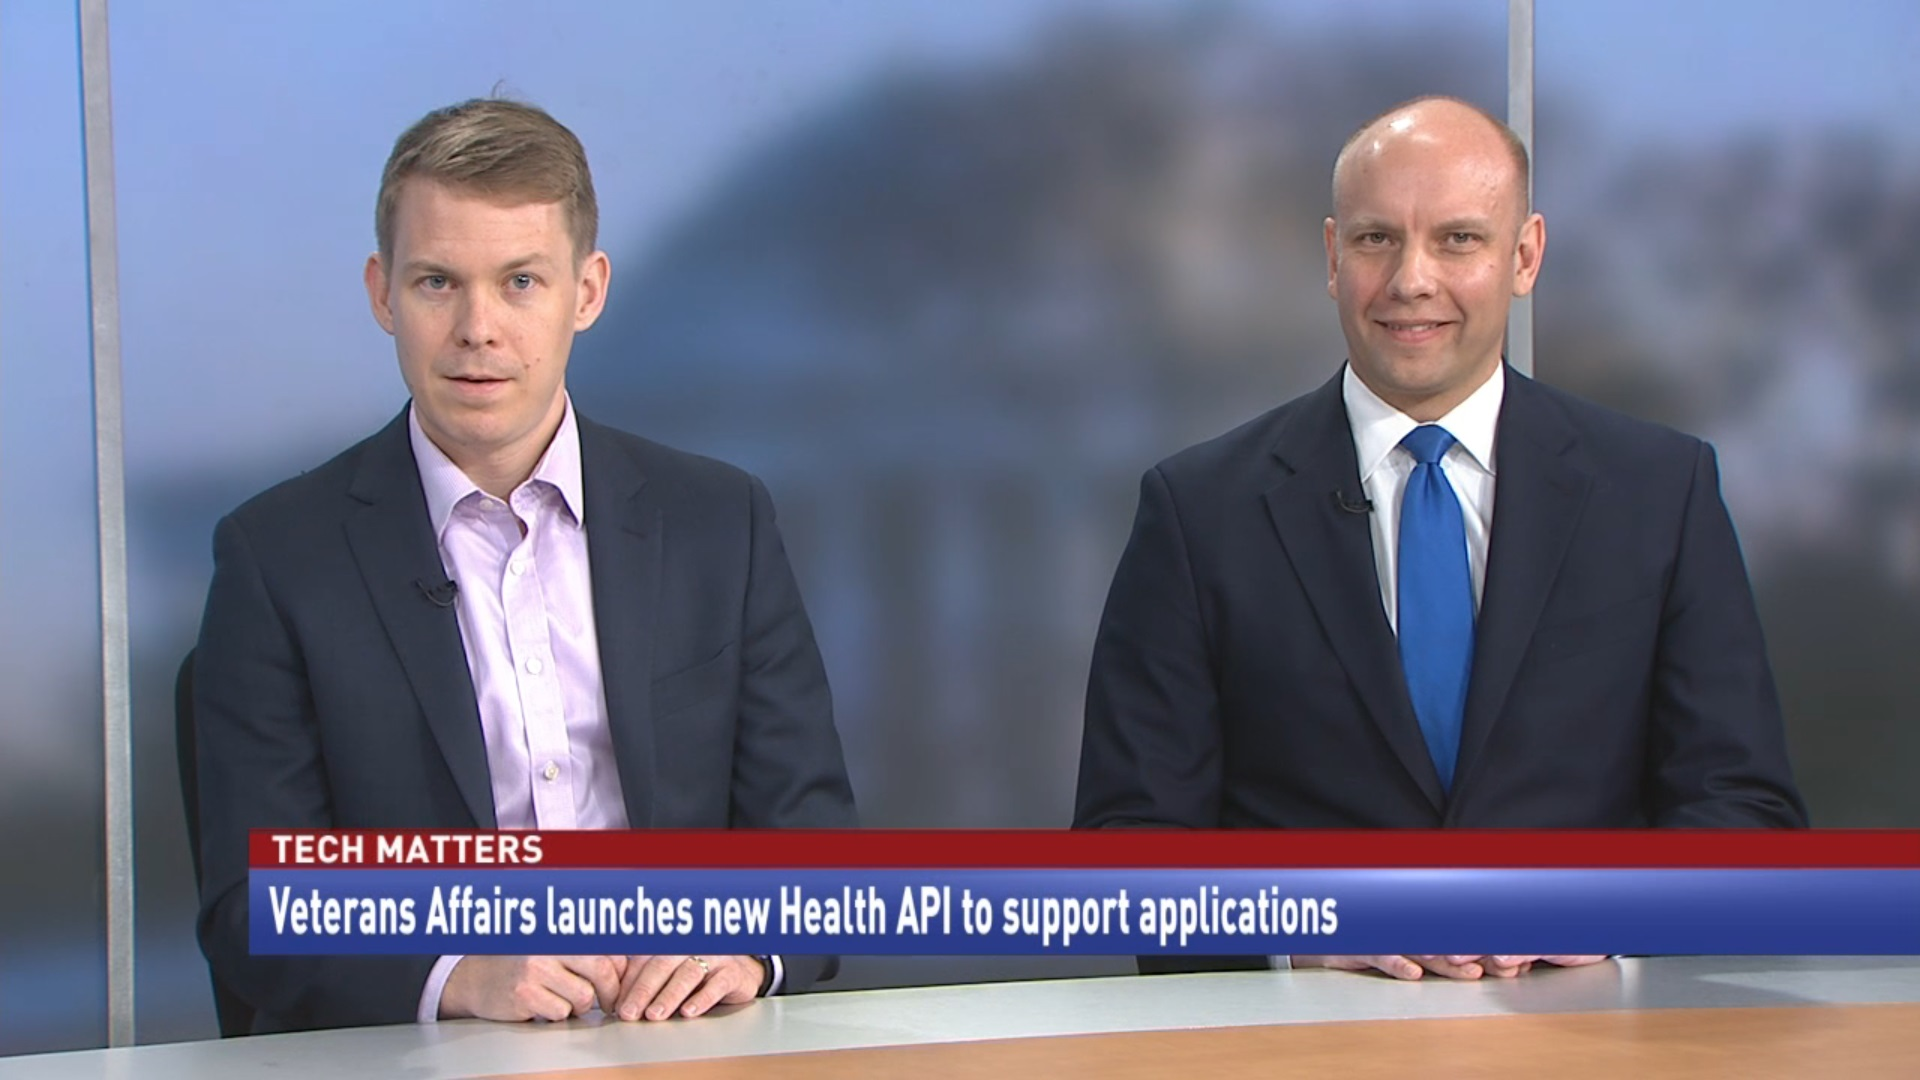 Veterans Affairs launches new Health API to support applications